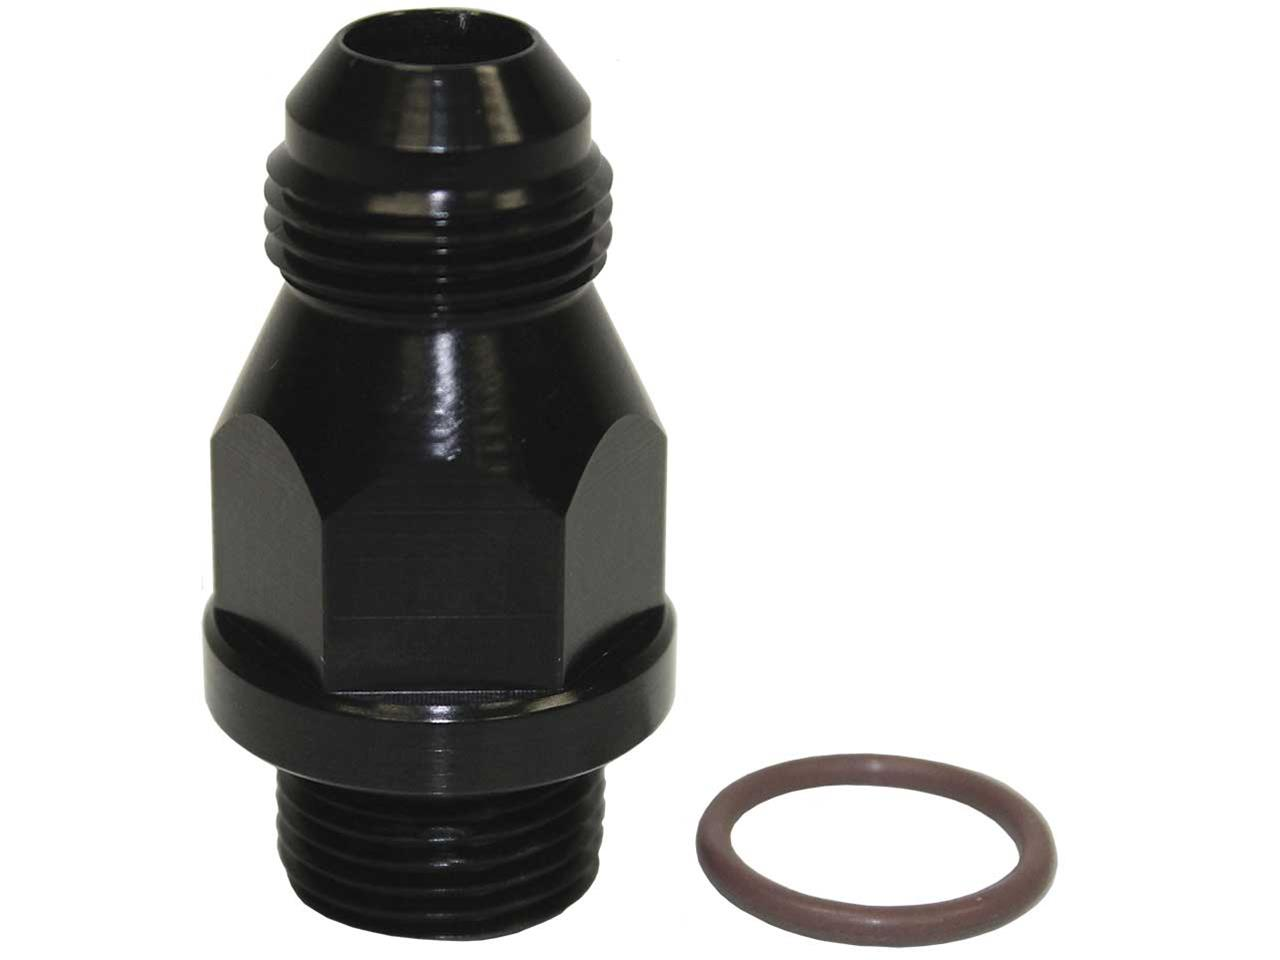 Carb Adapter - #8 x 3/4-16 ORB - Braswell (Black)